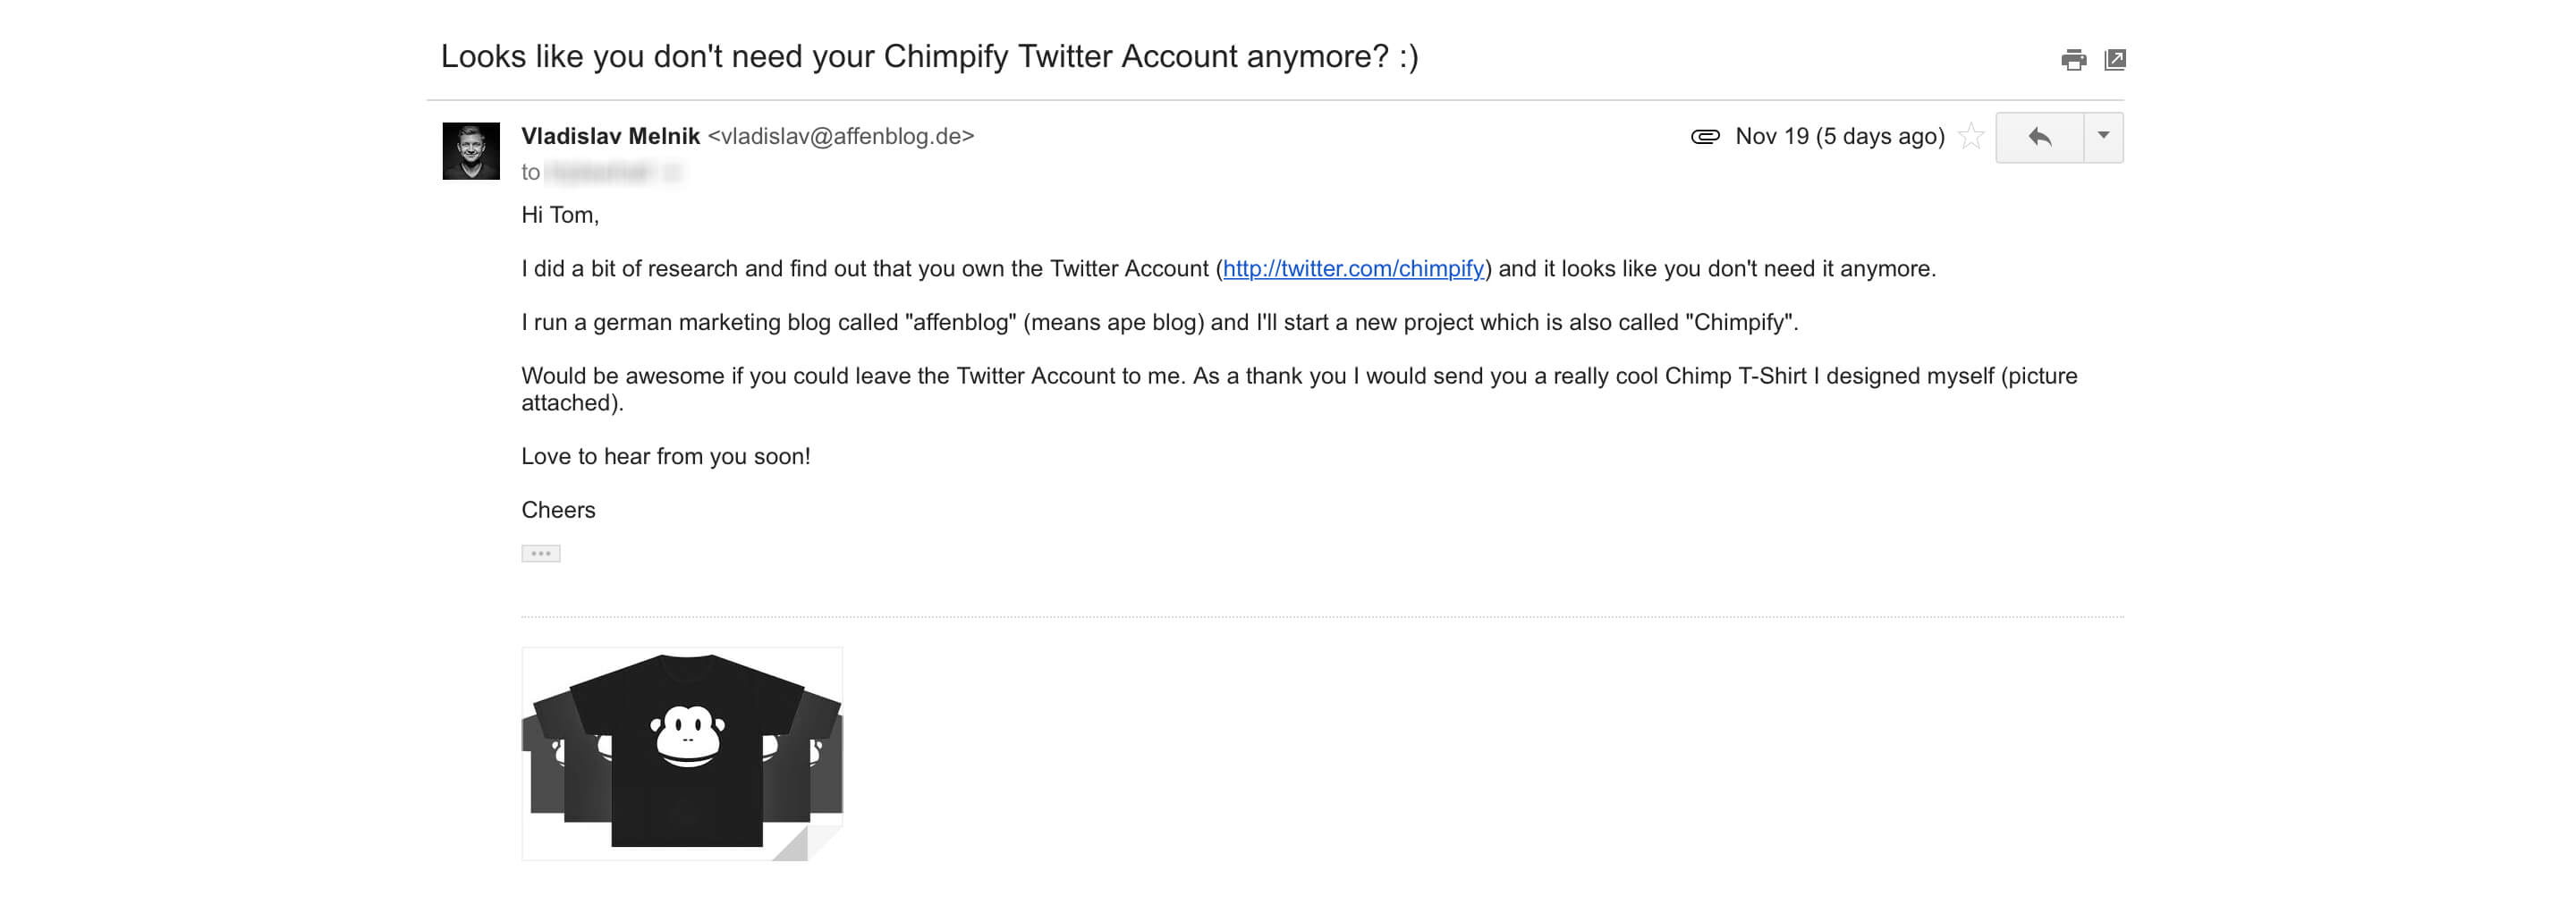 mail chimpify twitter account